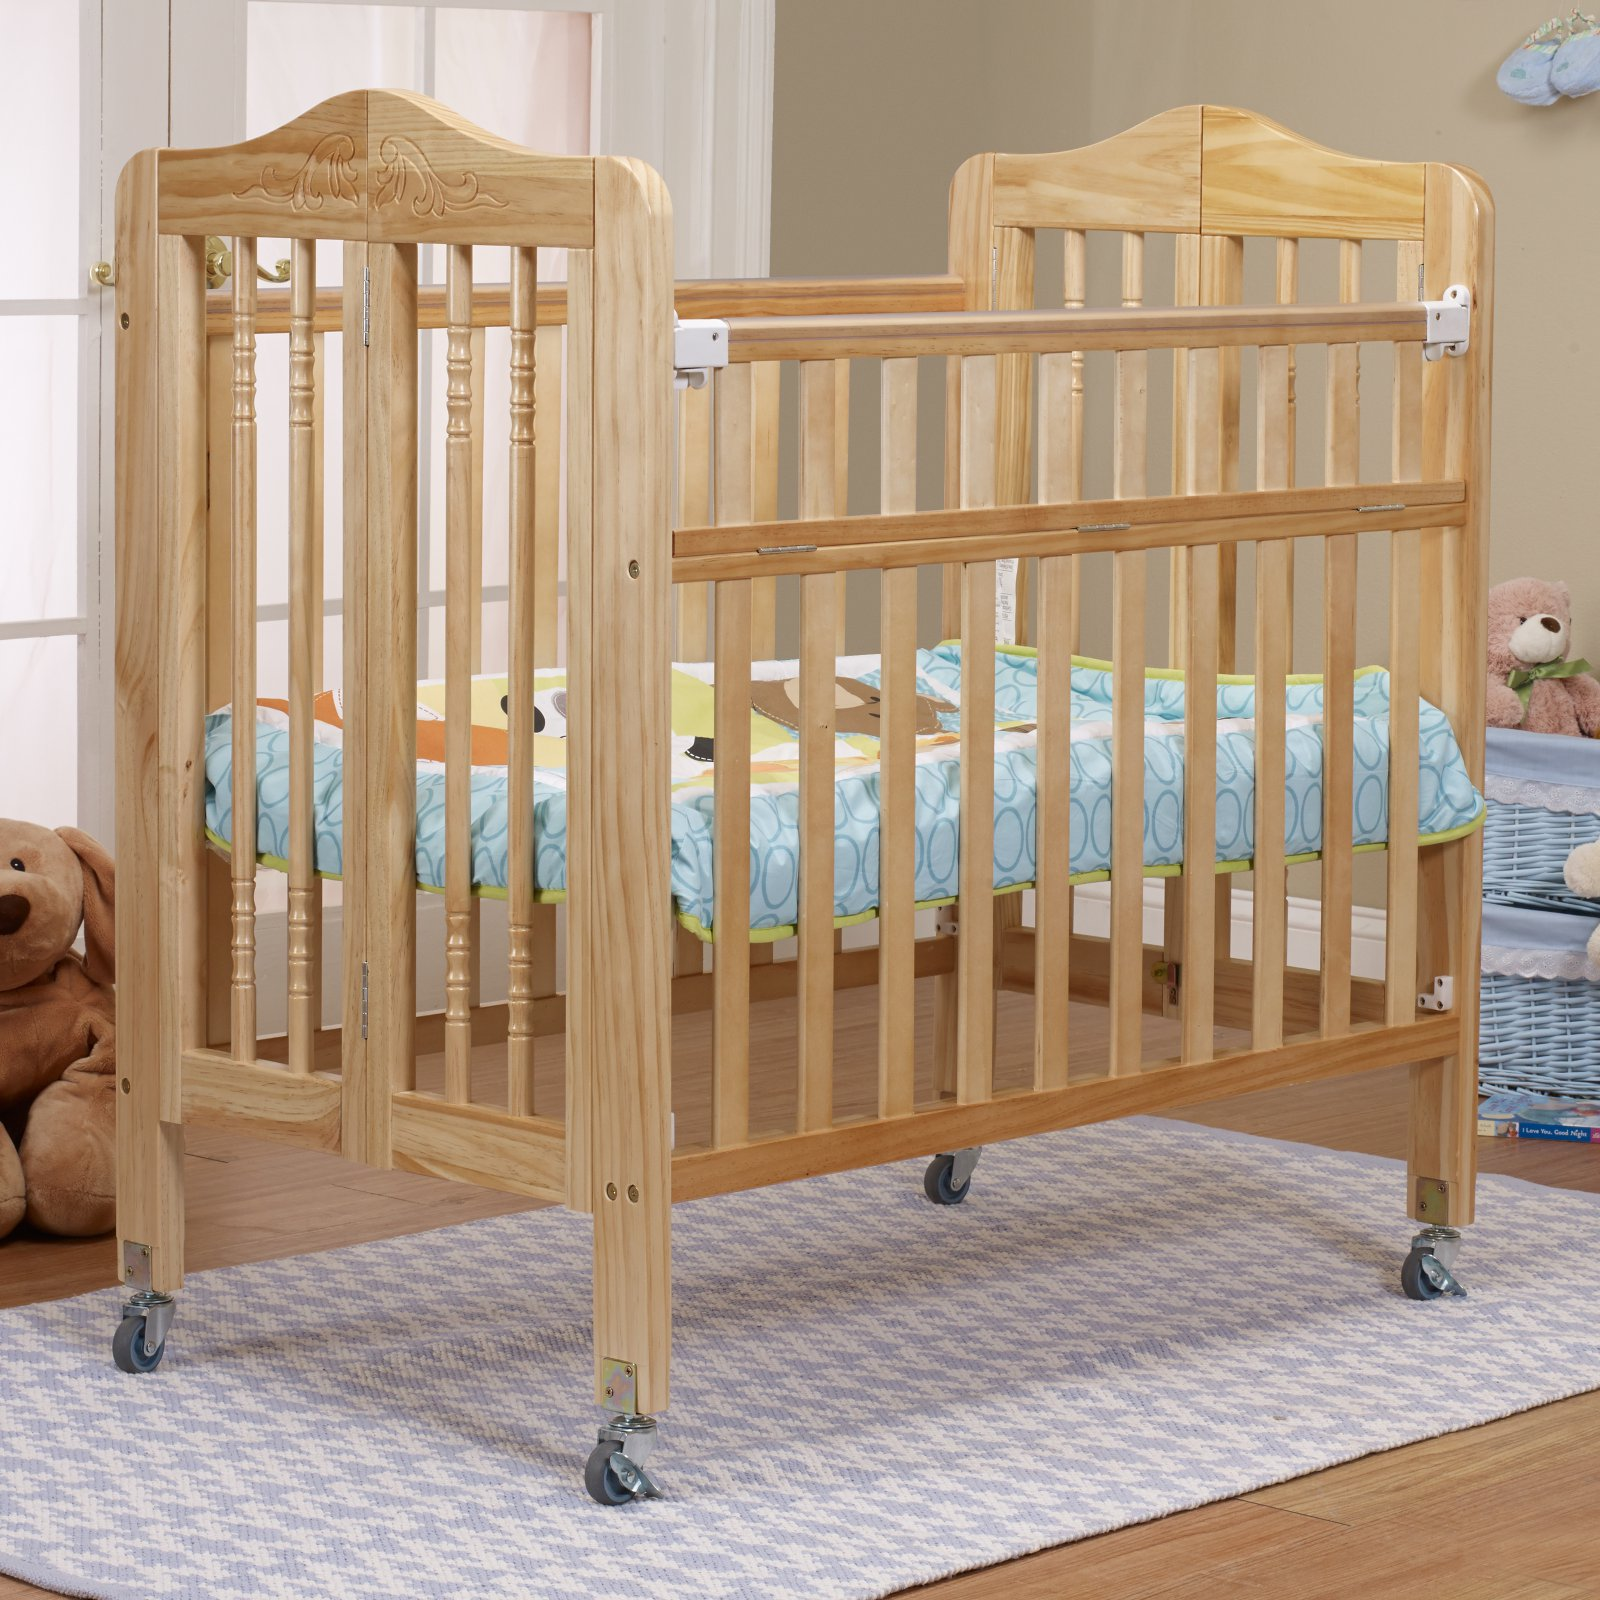 Orbelle Natalie 3-in-1 Folding Portable Crib by Orbelle